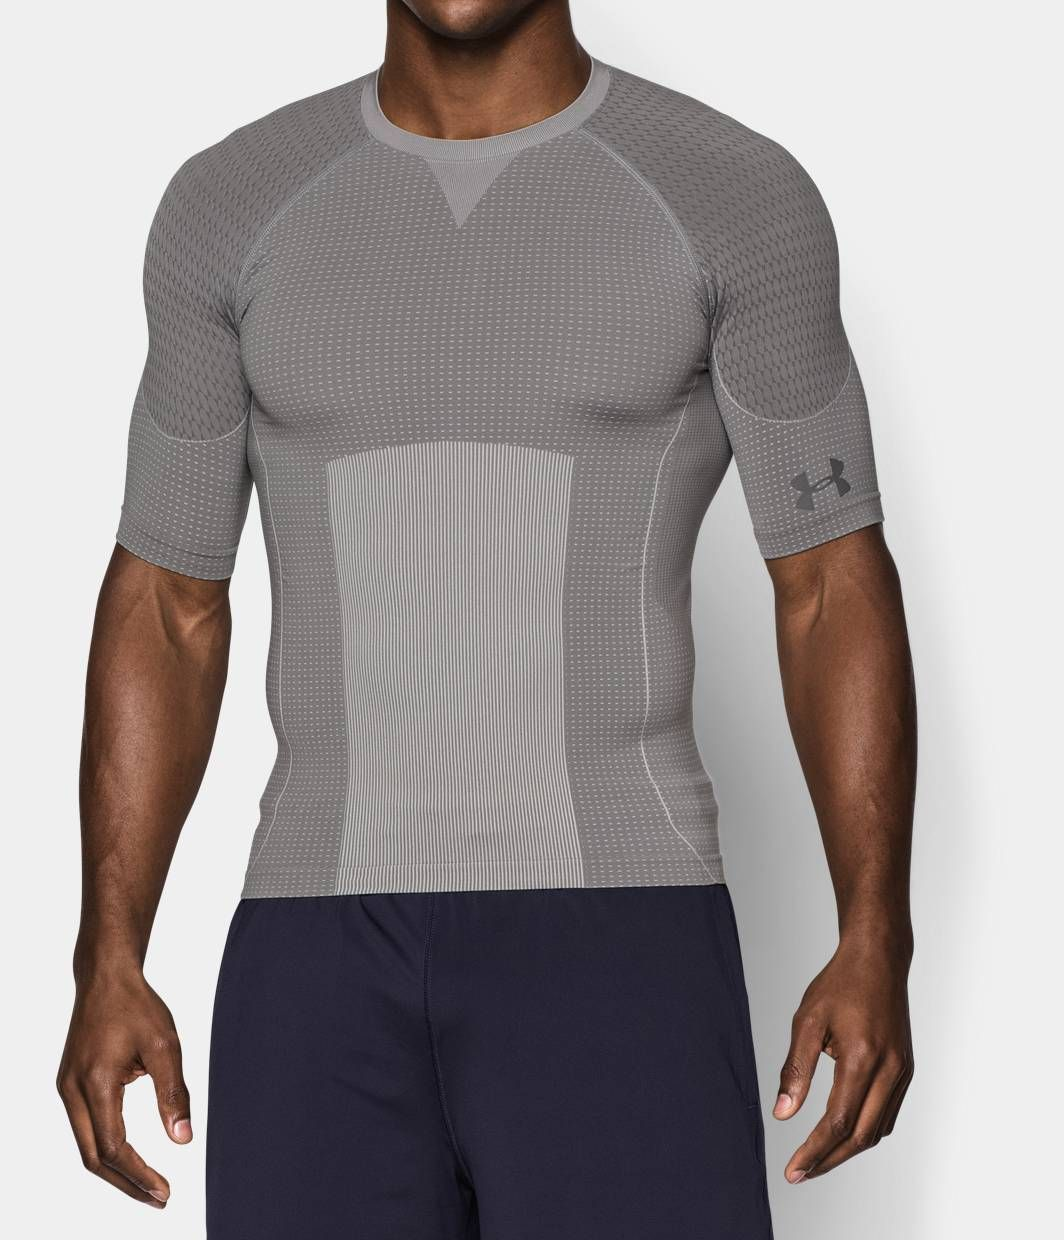 5b0dc3d9 Men's Captain America UA Seamless Compression Shirt | Under Armour ...